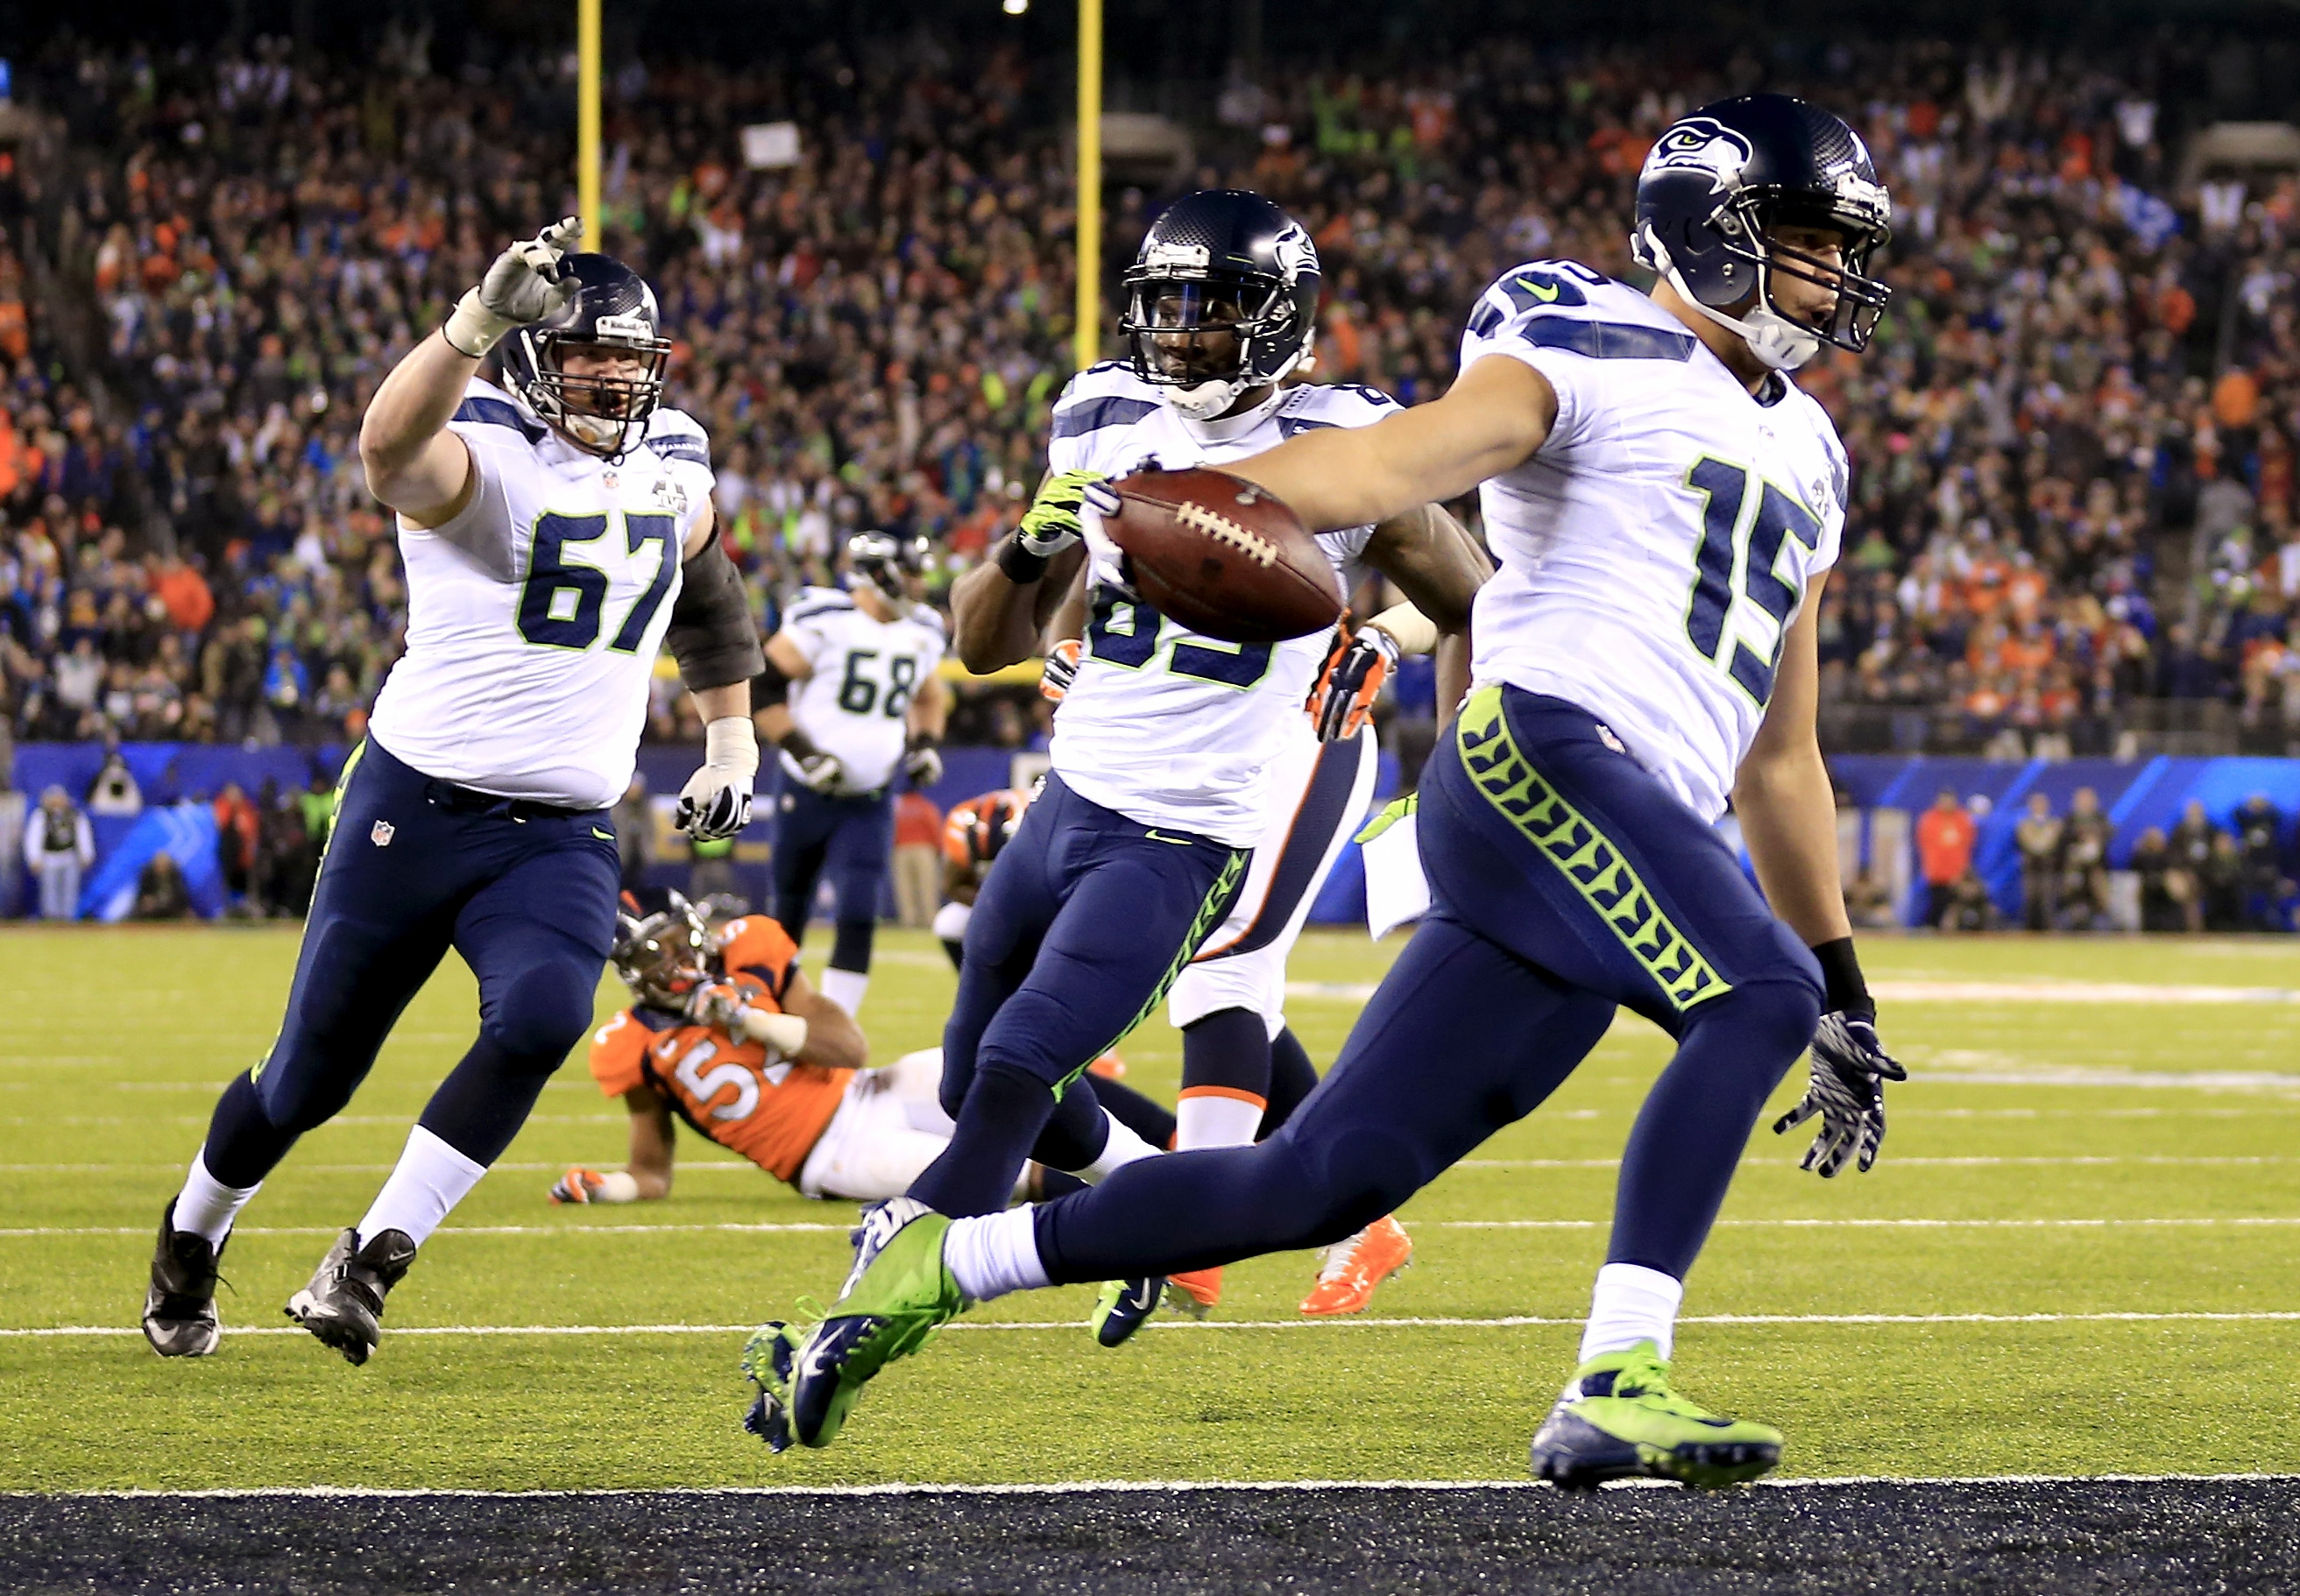 Wide receiver Jermaine Kearse #15 of the Seattle Seahawks runs 23 yards to score a third quarter touchdown against the Denver Broncos during Super Bowl XLVIII at MetLife Stadium on February 2, 2014 in East Rutherford, New Jersey.